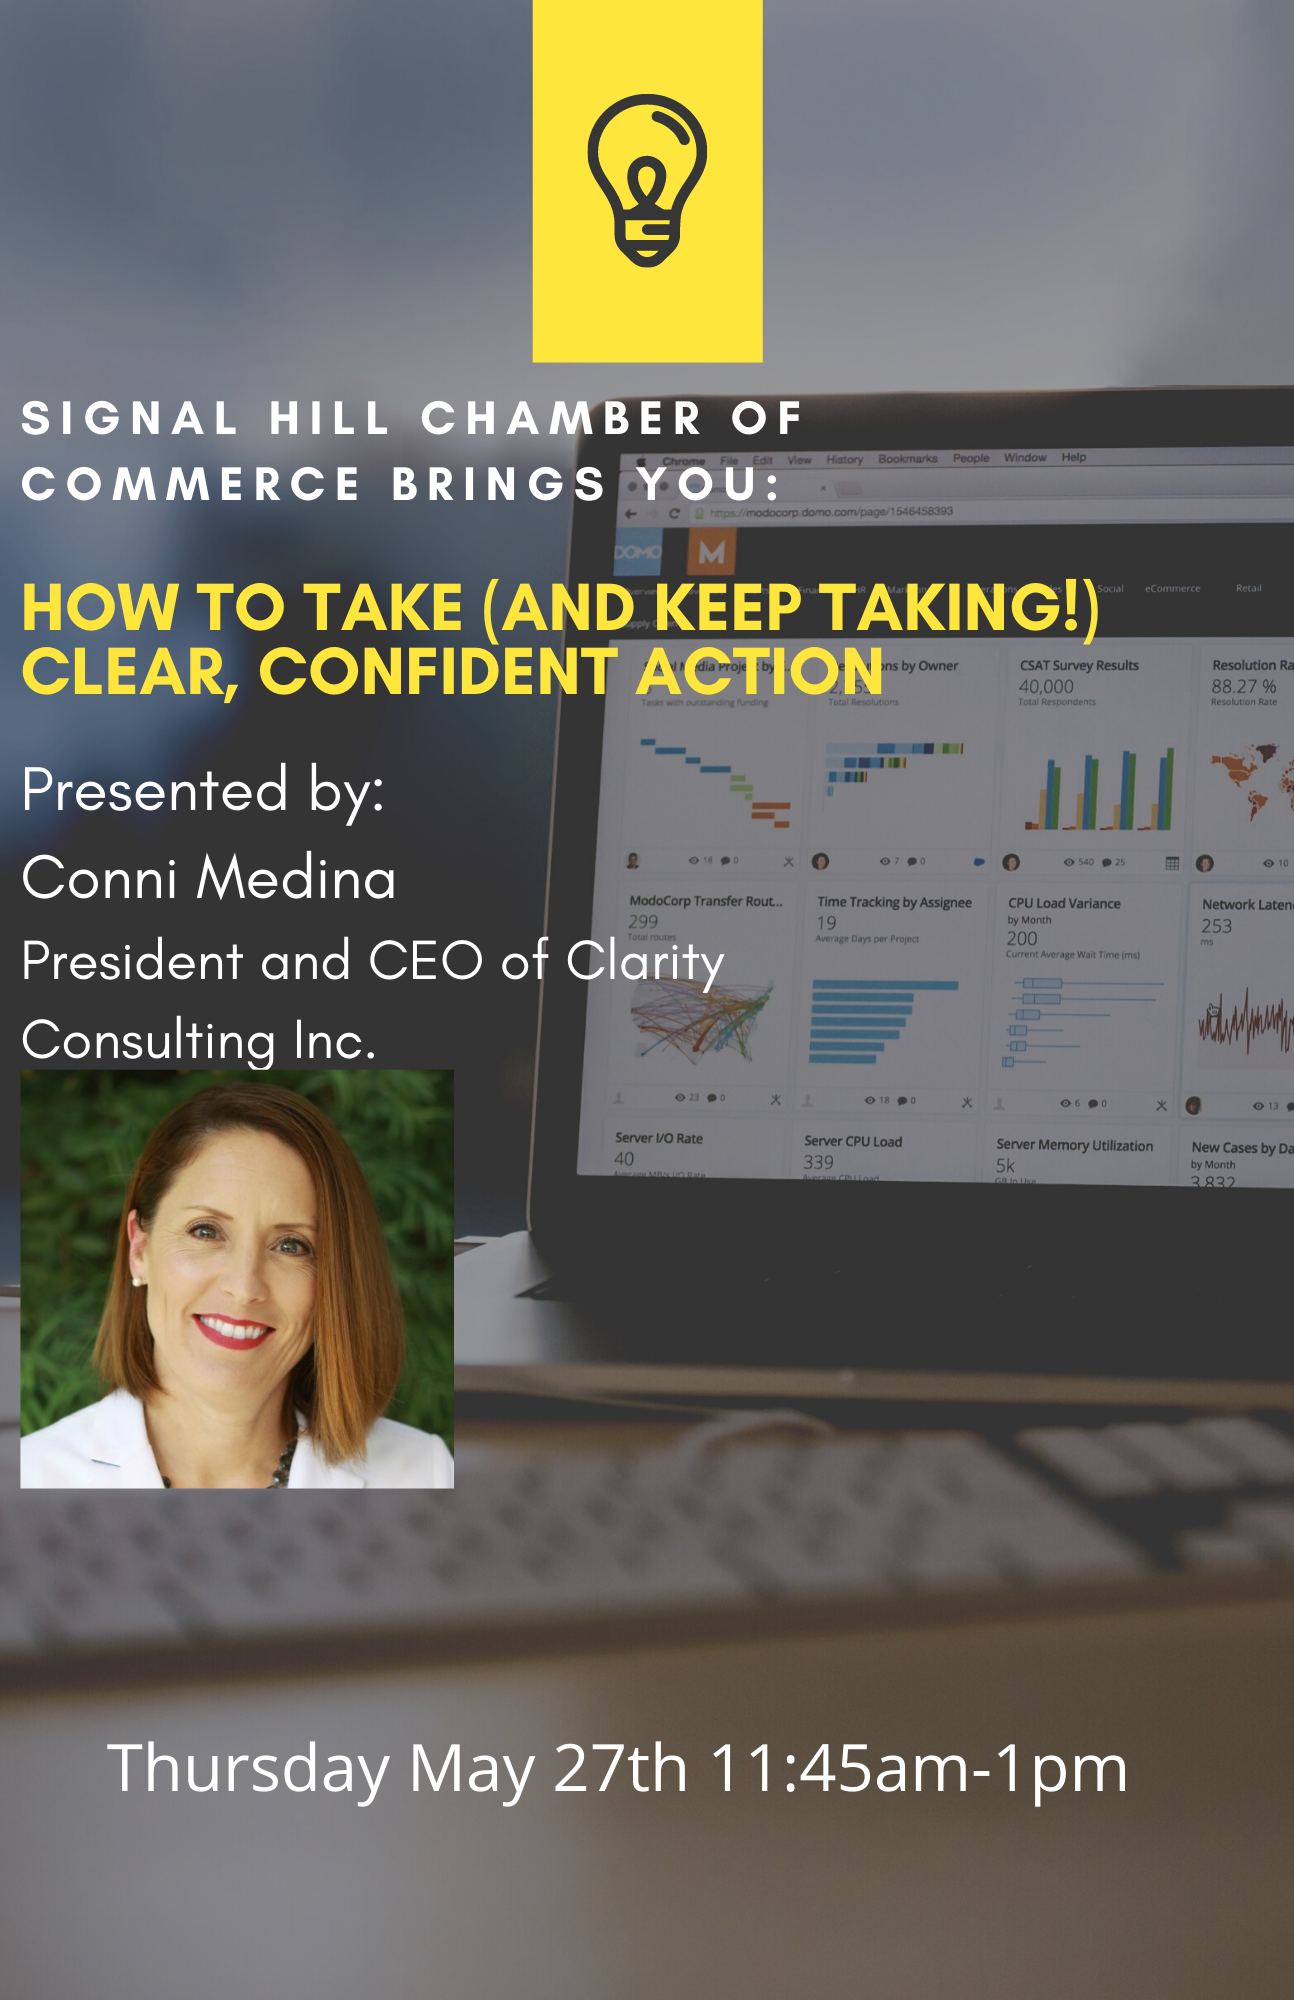 How to Take (and Keep Taking!) Clear, Confident Action- SHCC MORNING MIXER